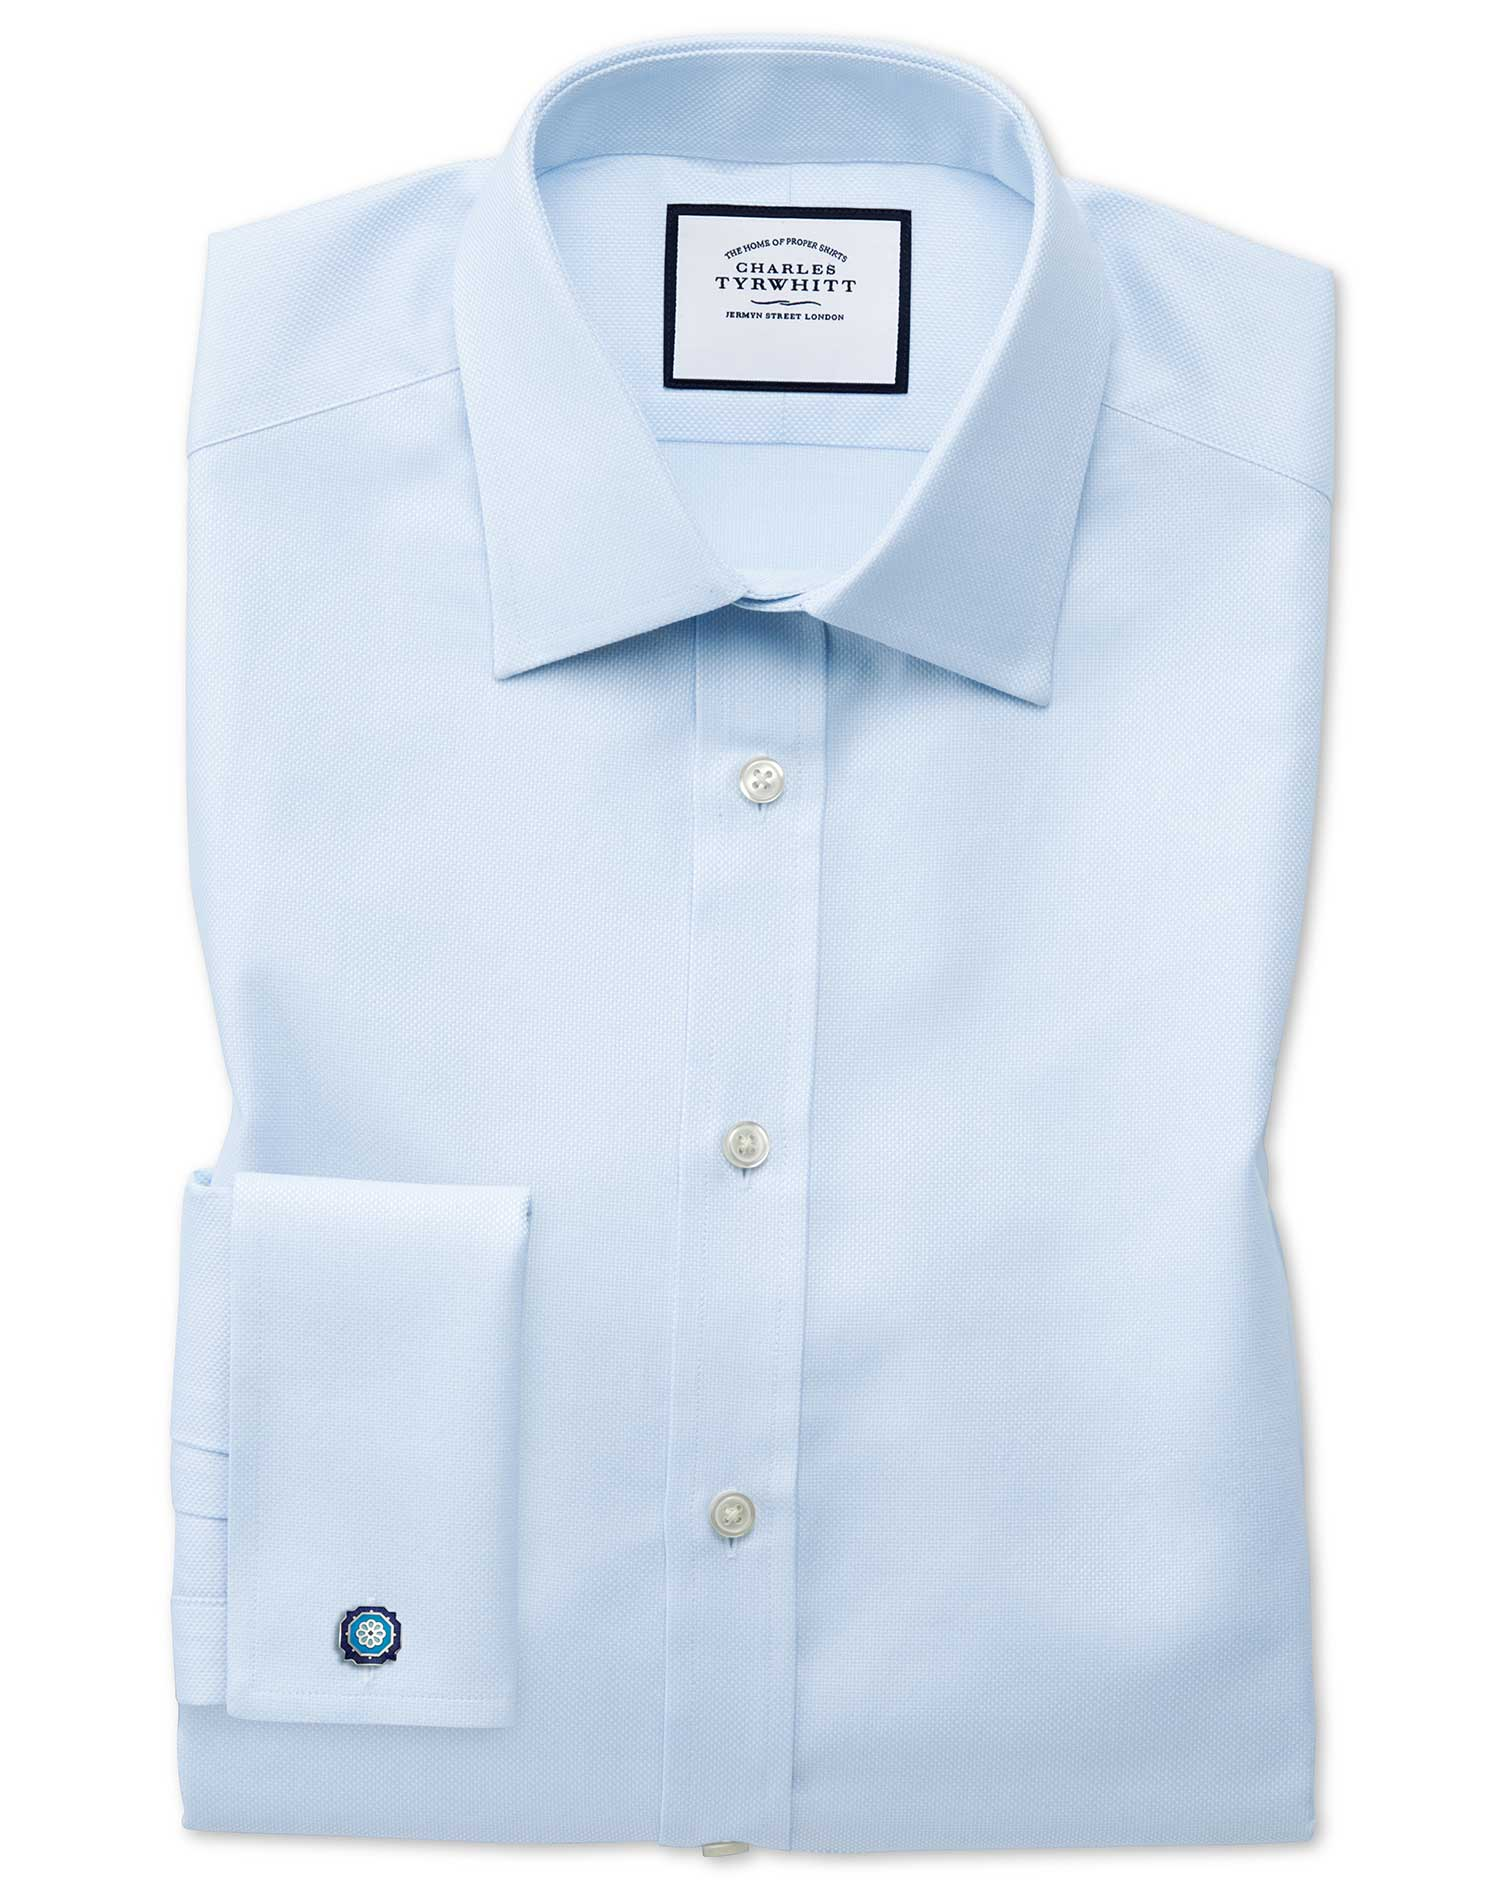 Classic Fit Egyptian Cotton Royal Oxford Sky Blue Formal Shirt Single Cuff Size 19/37 by Charles Tyr